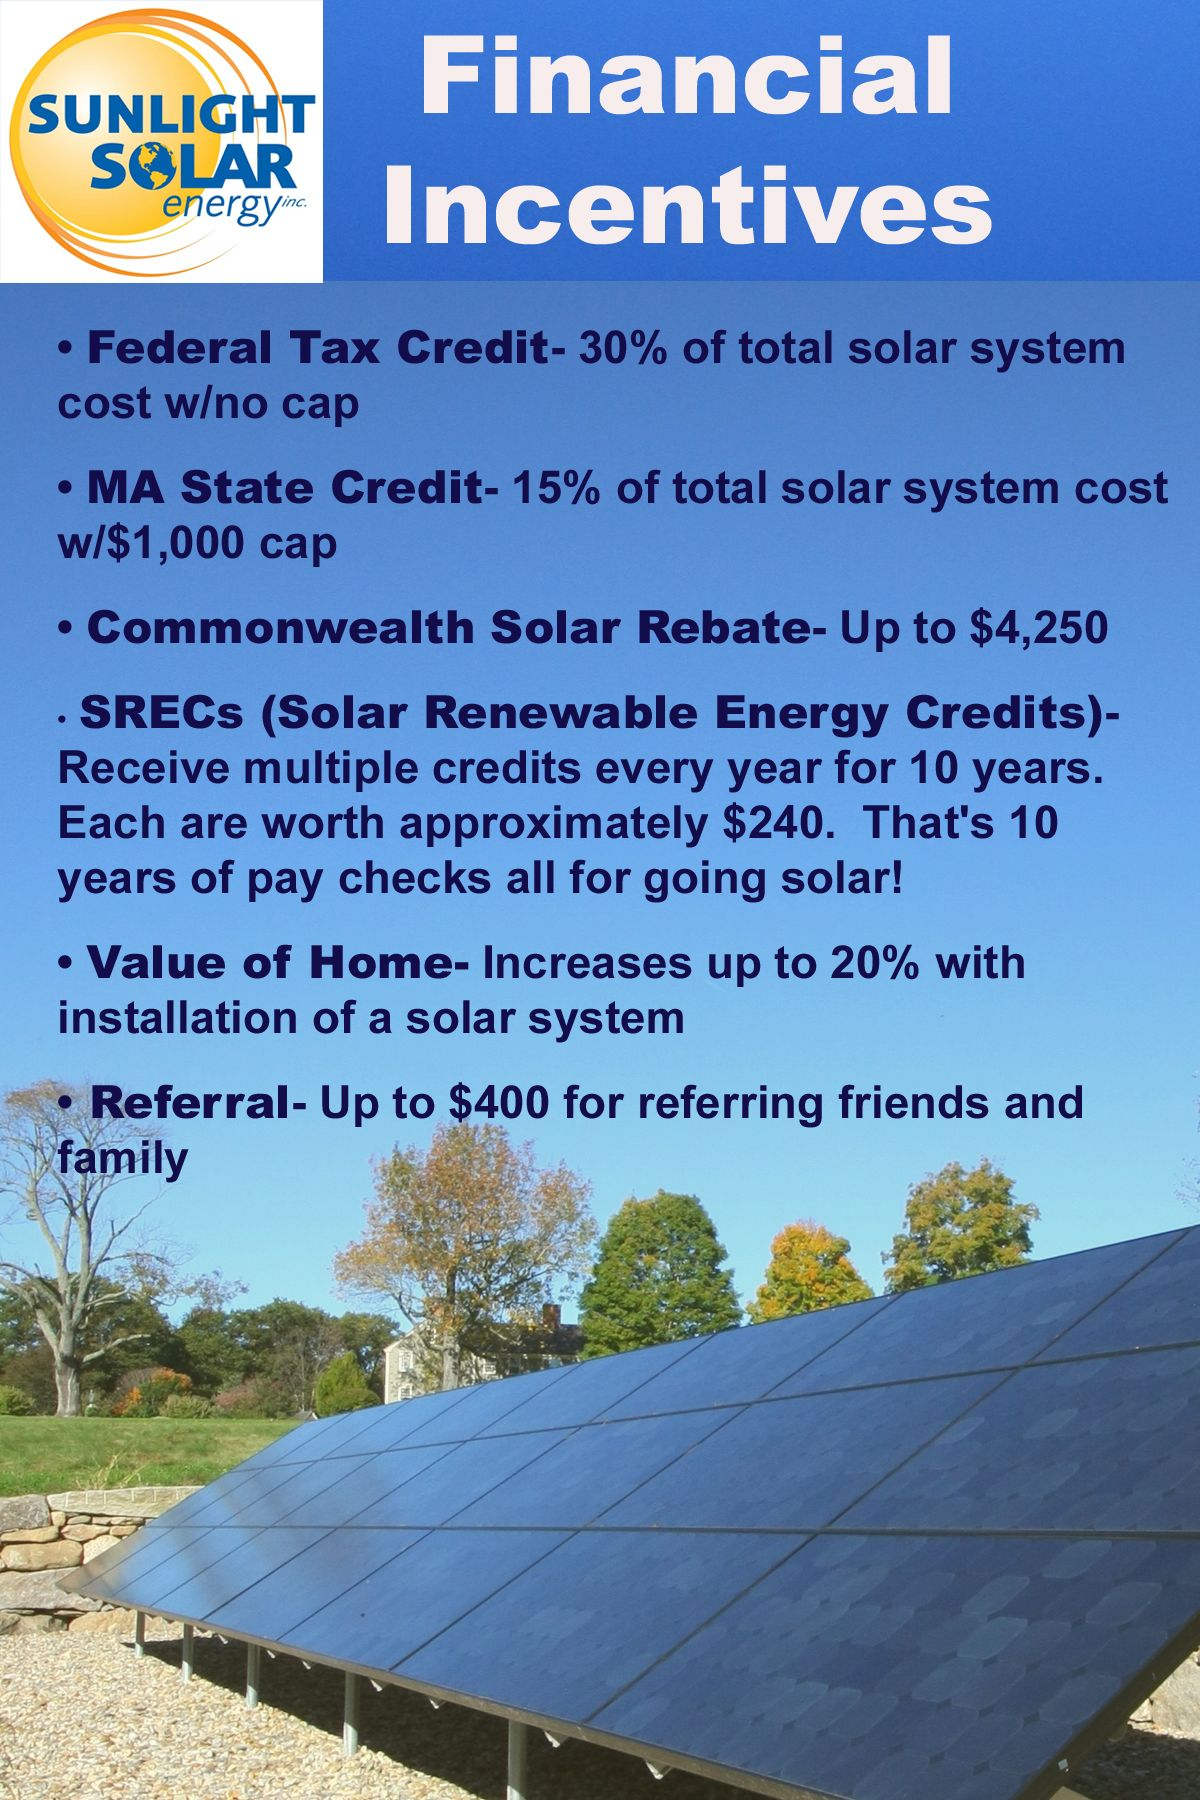 Financial Incentives For Going Solar In Massachusetts Many People Break Even Year 4 Or 5 After Installing A Solar Syst Solar News Solar System Solar Rebates